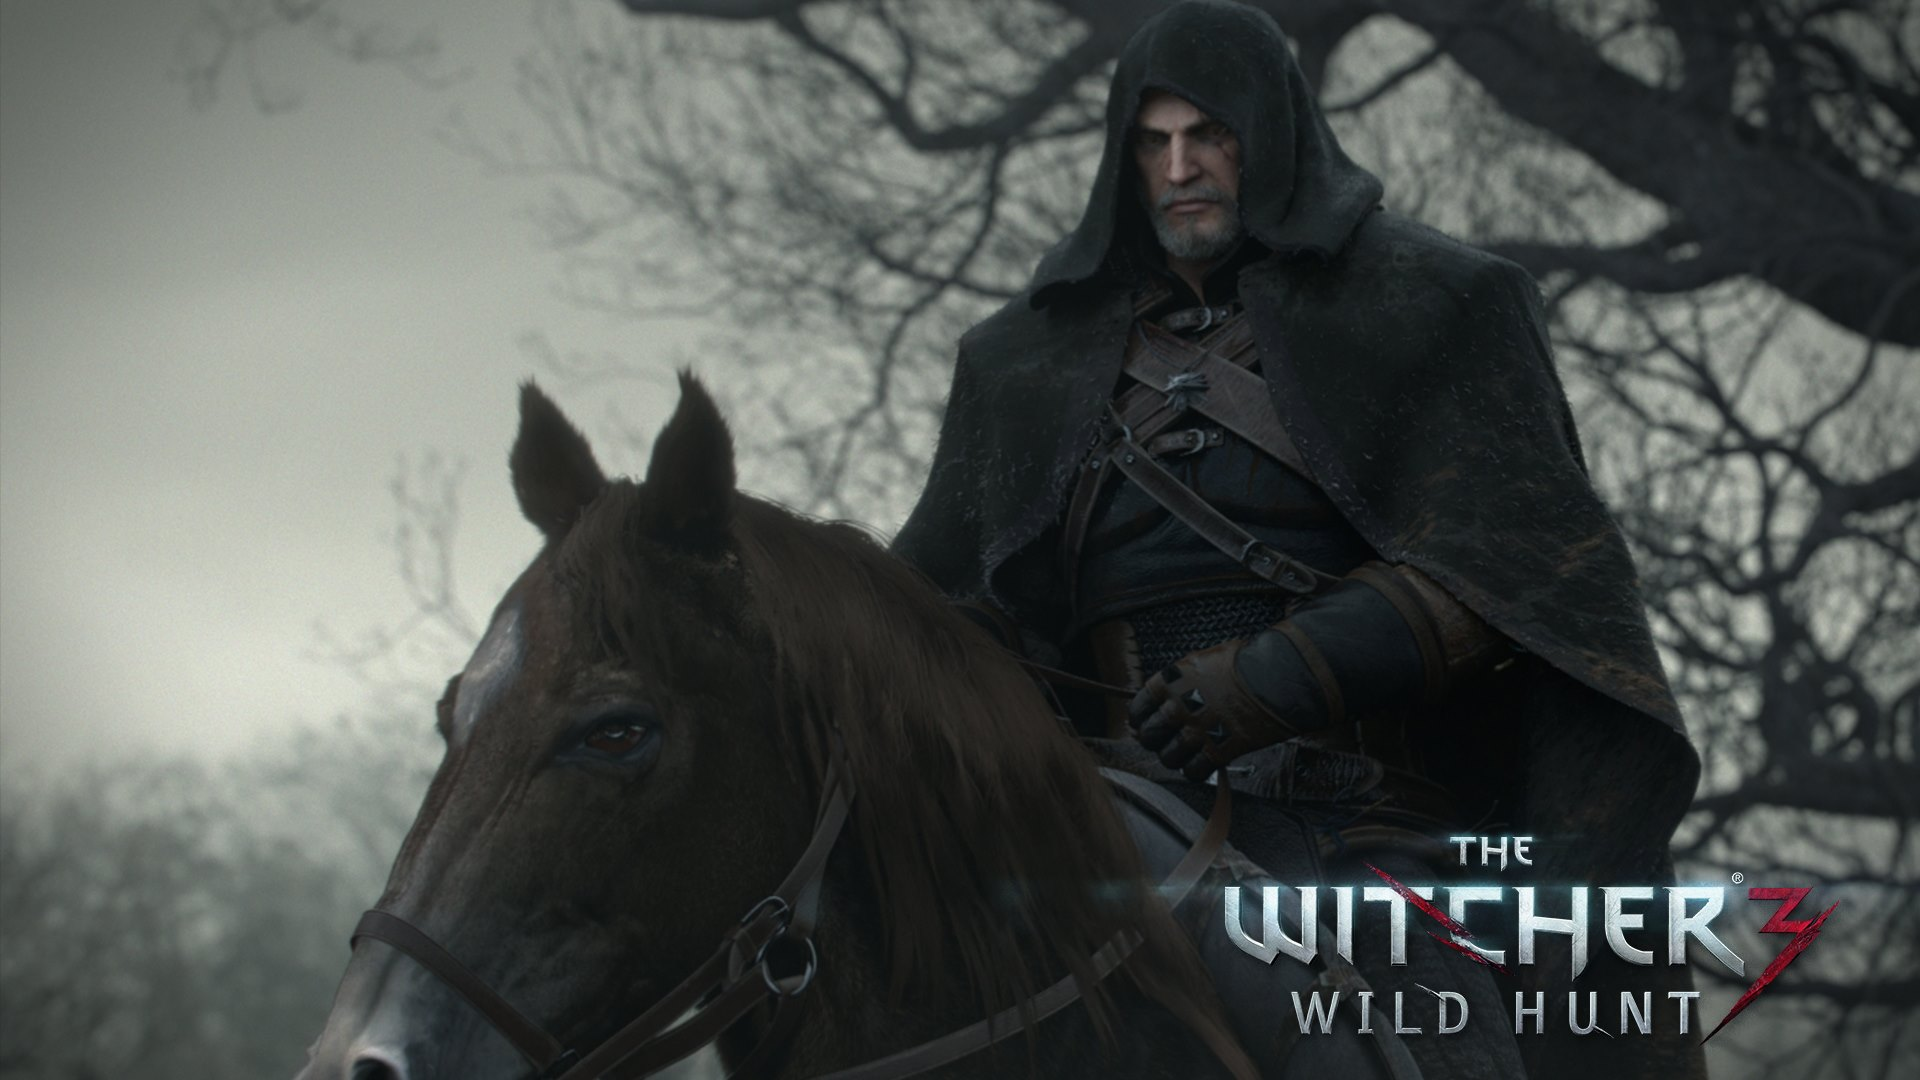 the witcher 3 wild hunt wallpaper hd wallpapers